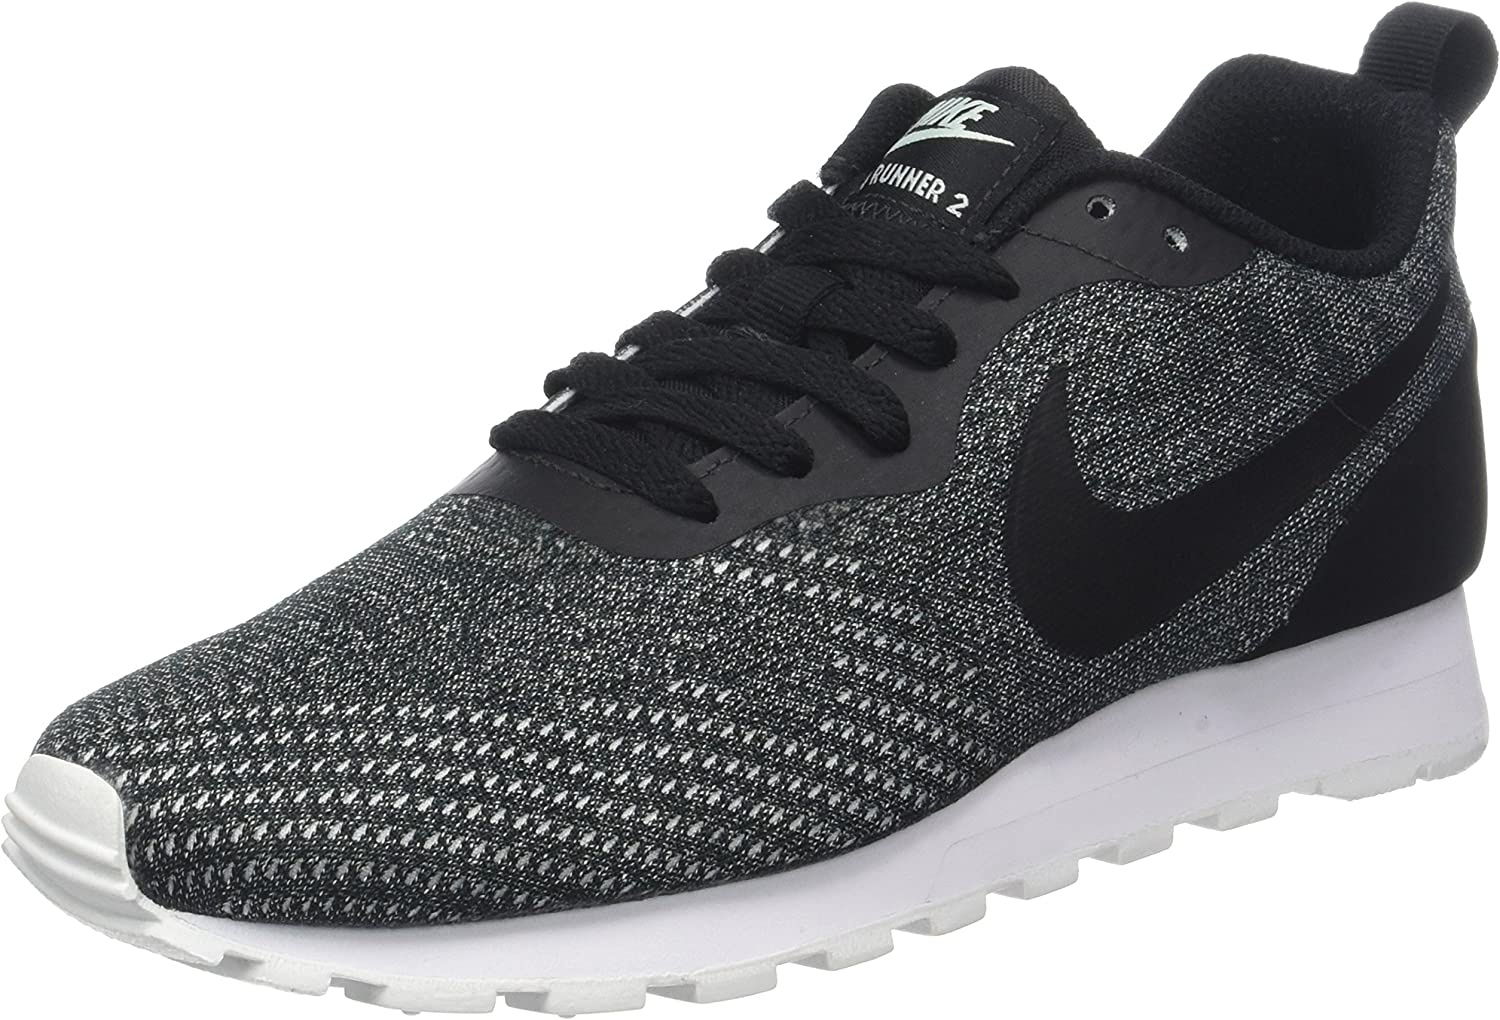 Md Runner 2 Eng Mesh Trainers